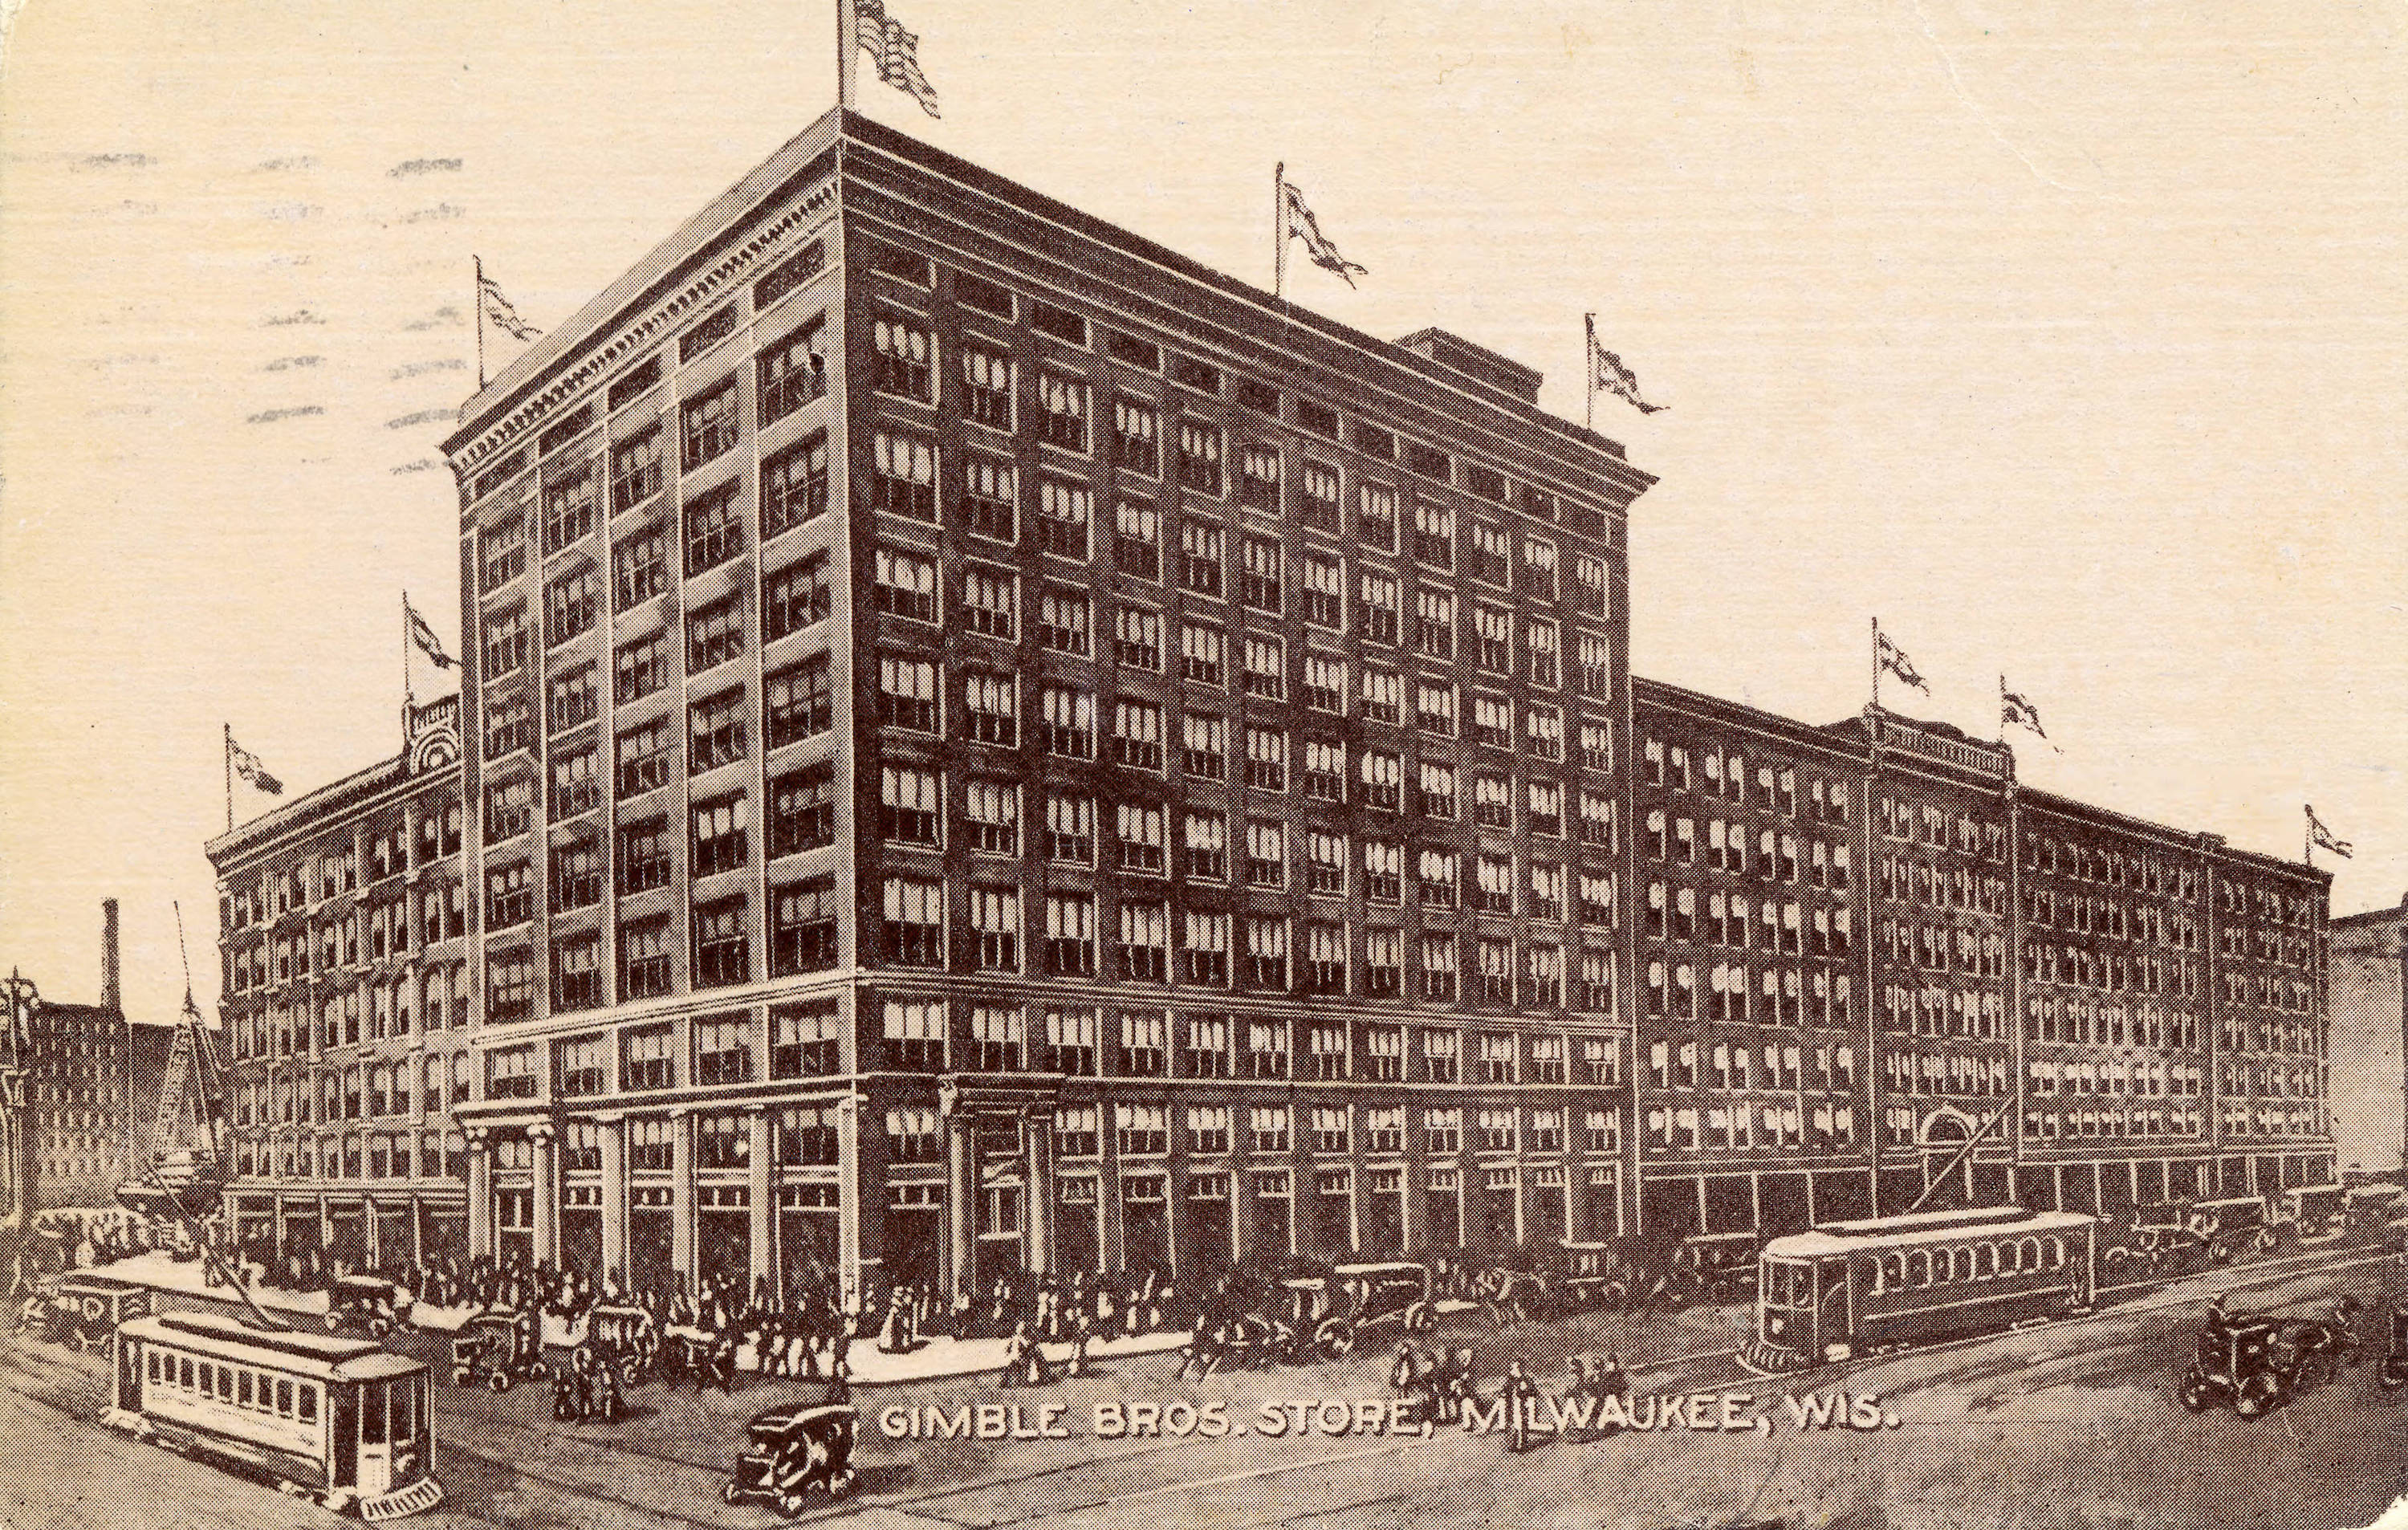 This 1912 image shows the large Gimbels department store building downtown.